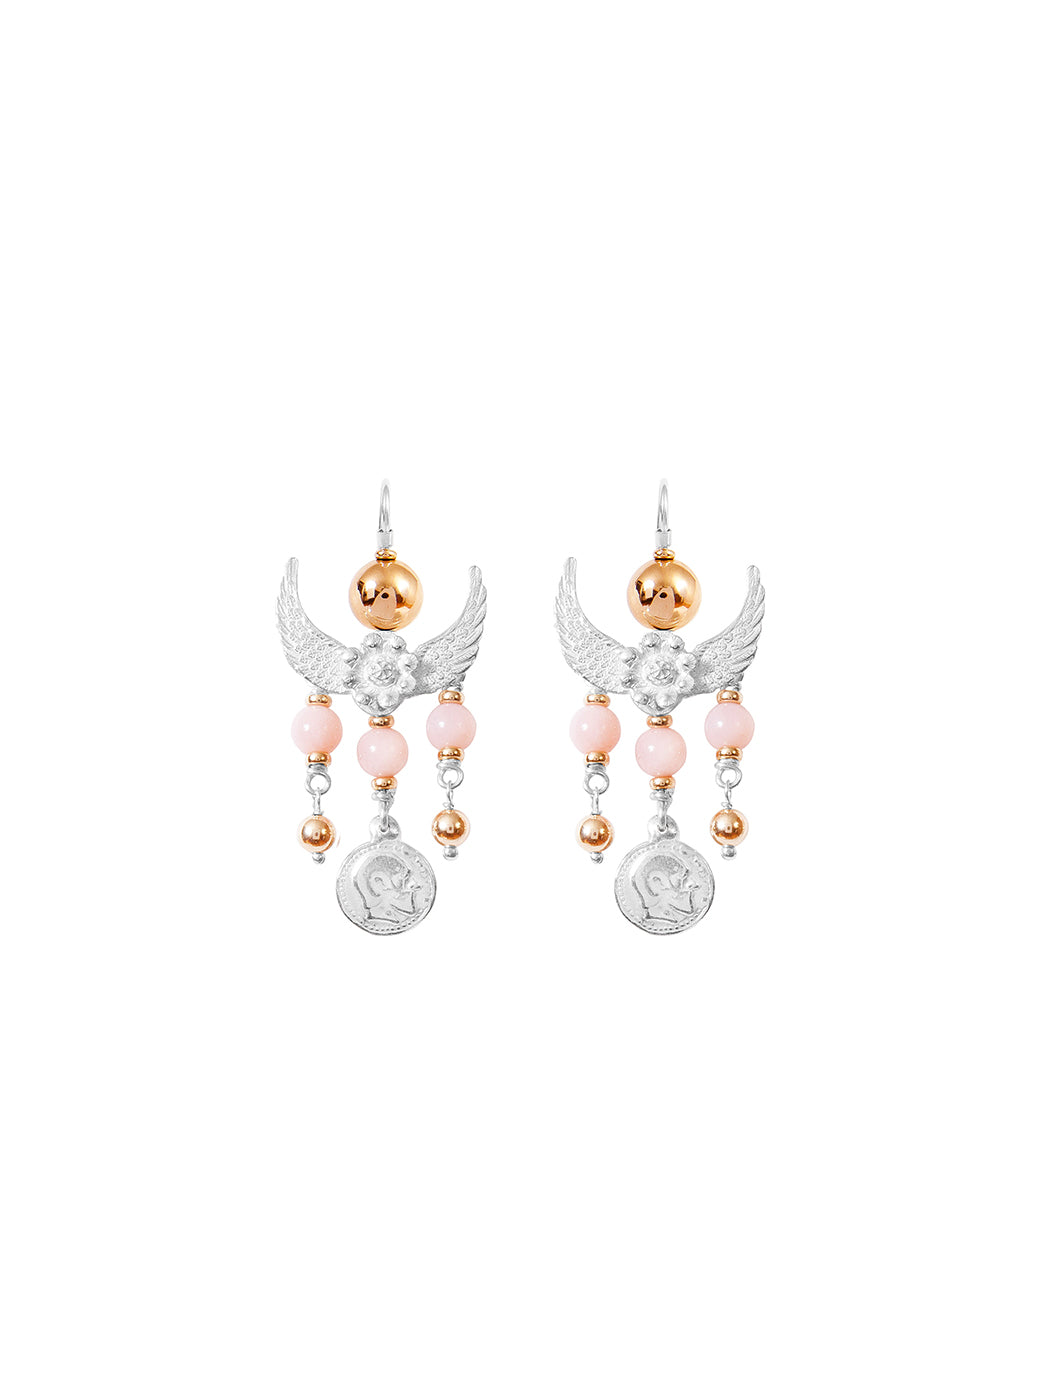 Fiorina Jewellery Gypset Earrings Pink Opal